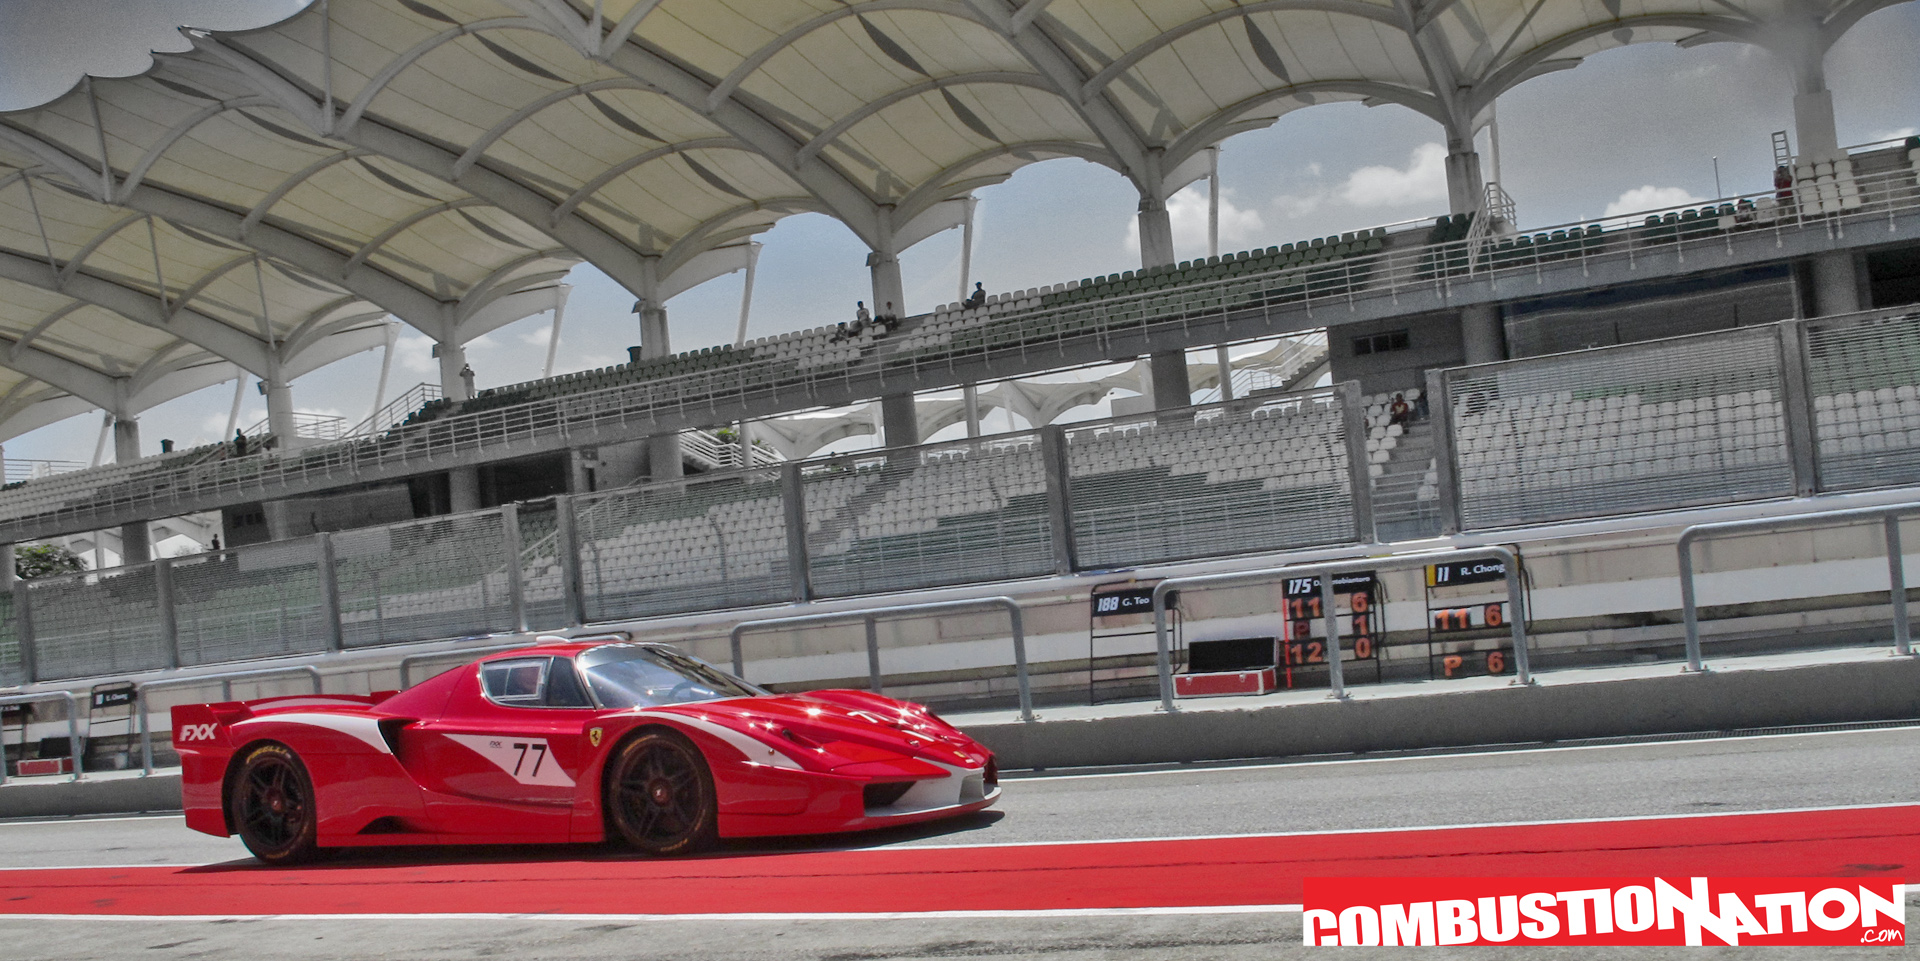 FXX track